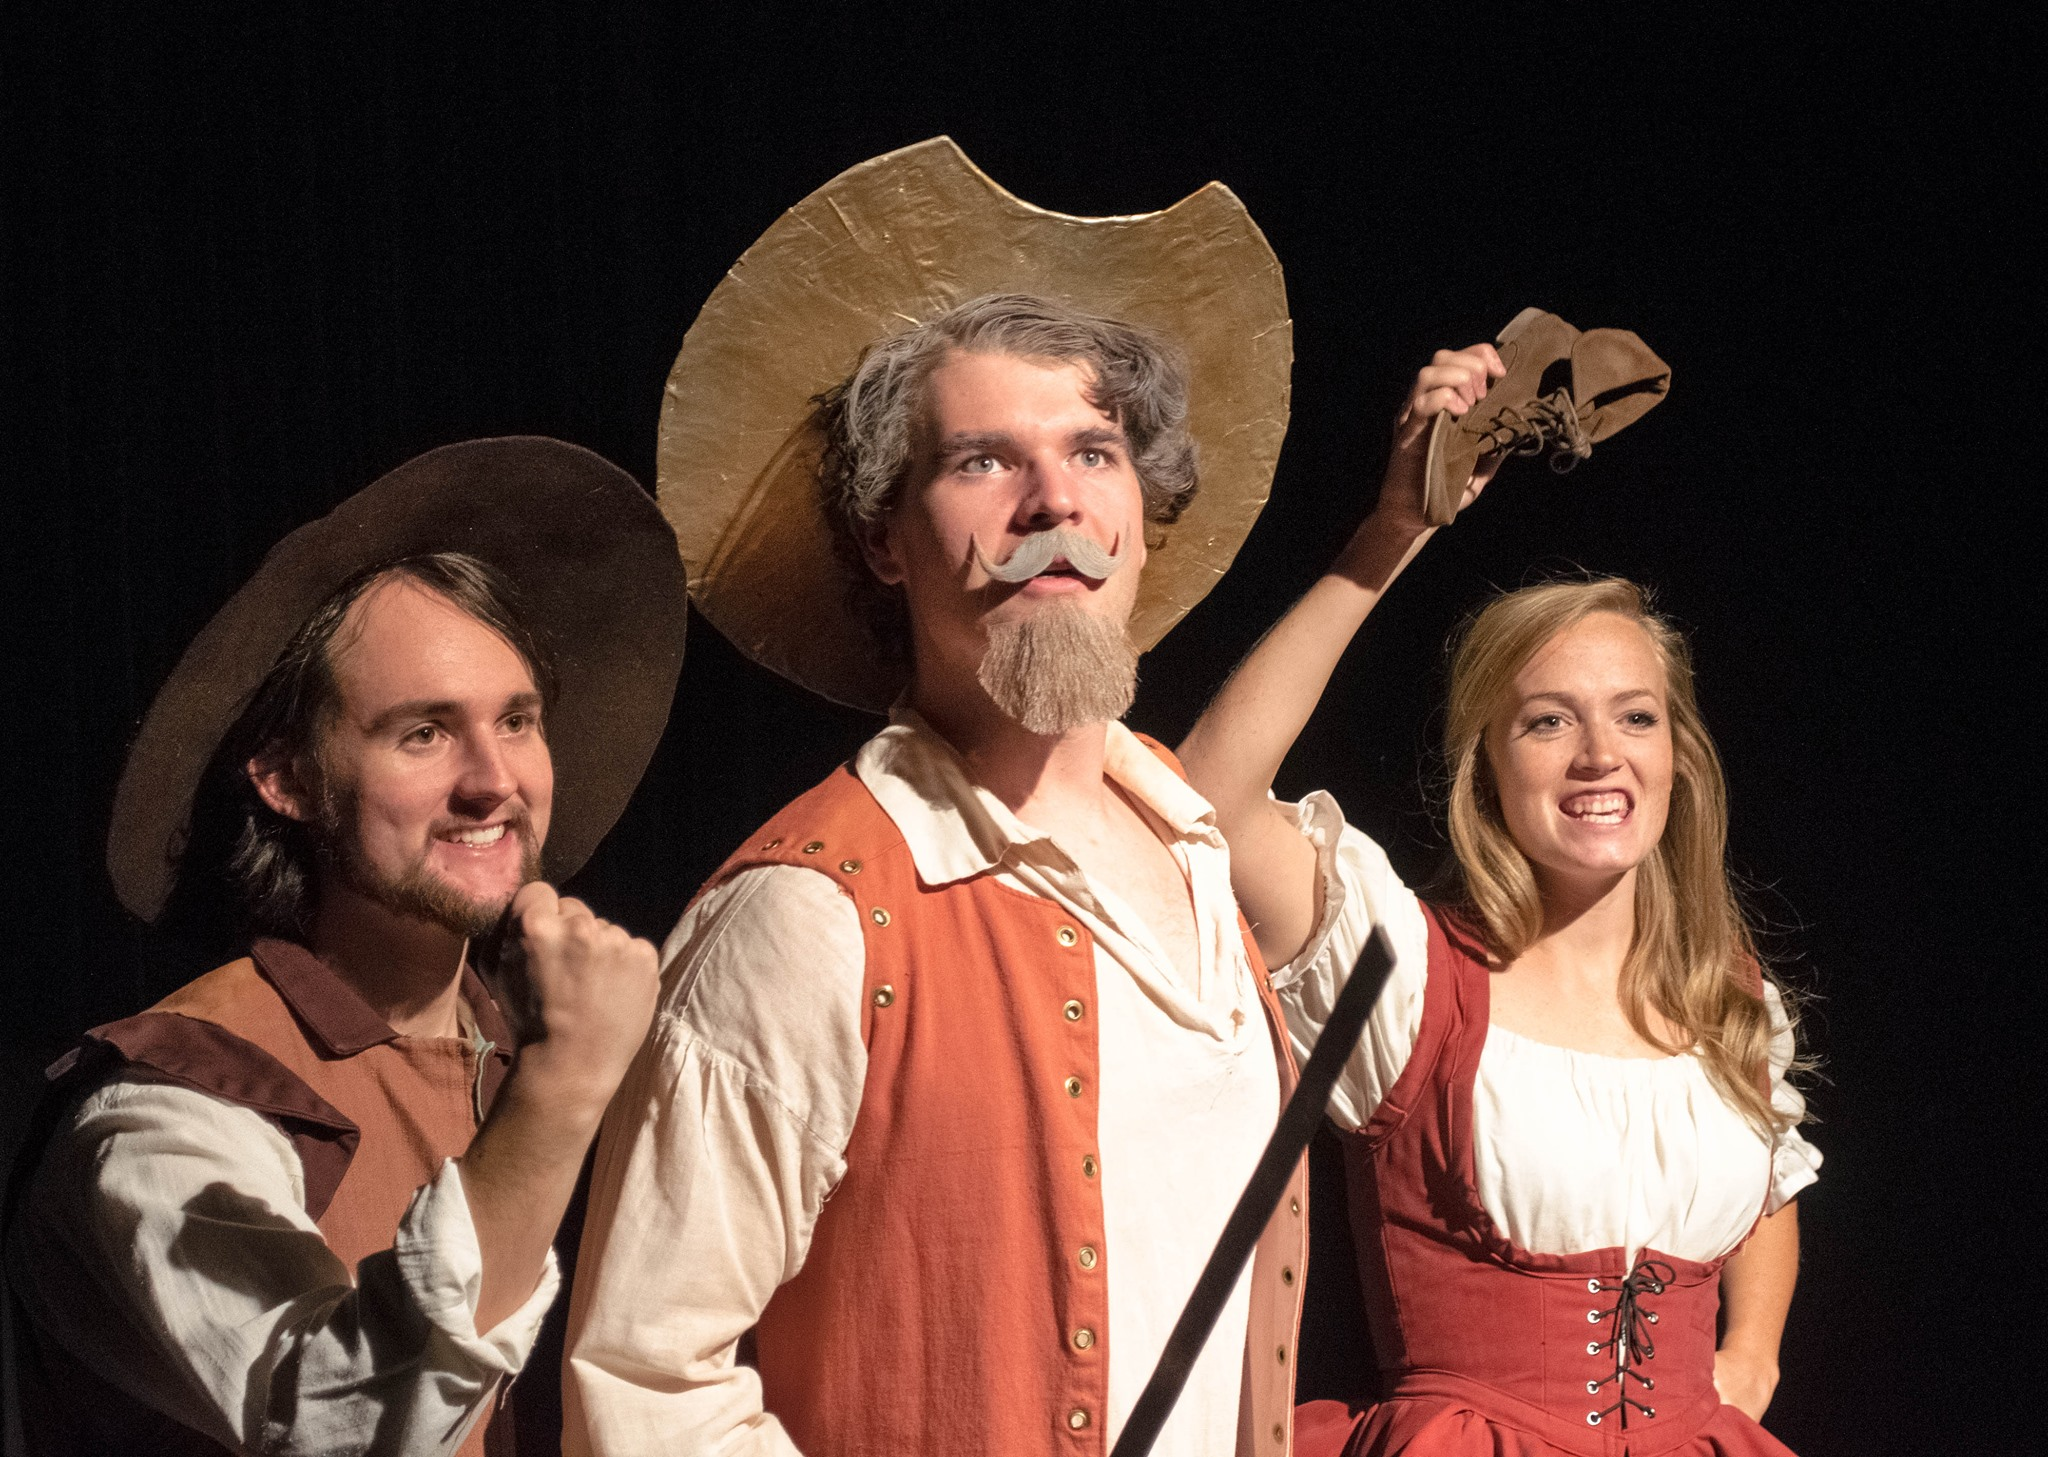 From left to right, Jack Edling as Sancho Panza, William Darby as Don Quixote, and Sammie Brown as Aldonza. (Photo courtesy of the Covenant College Theatre Department.)